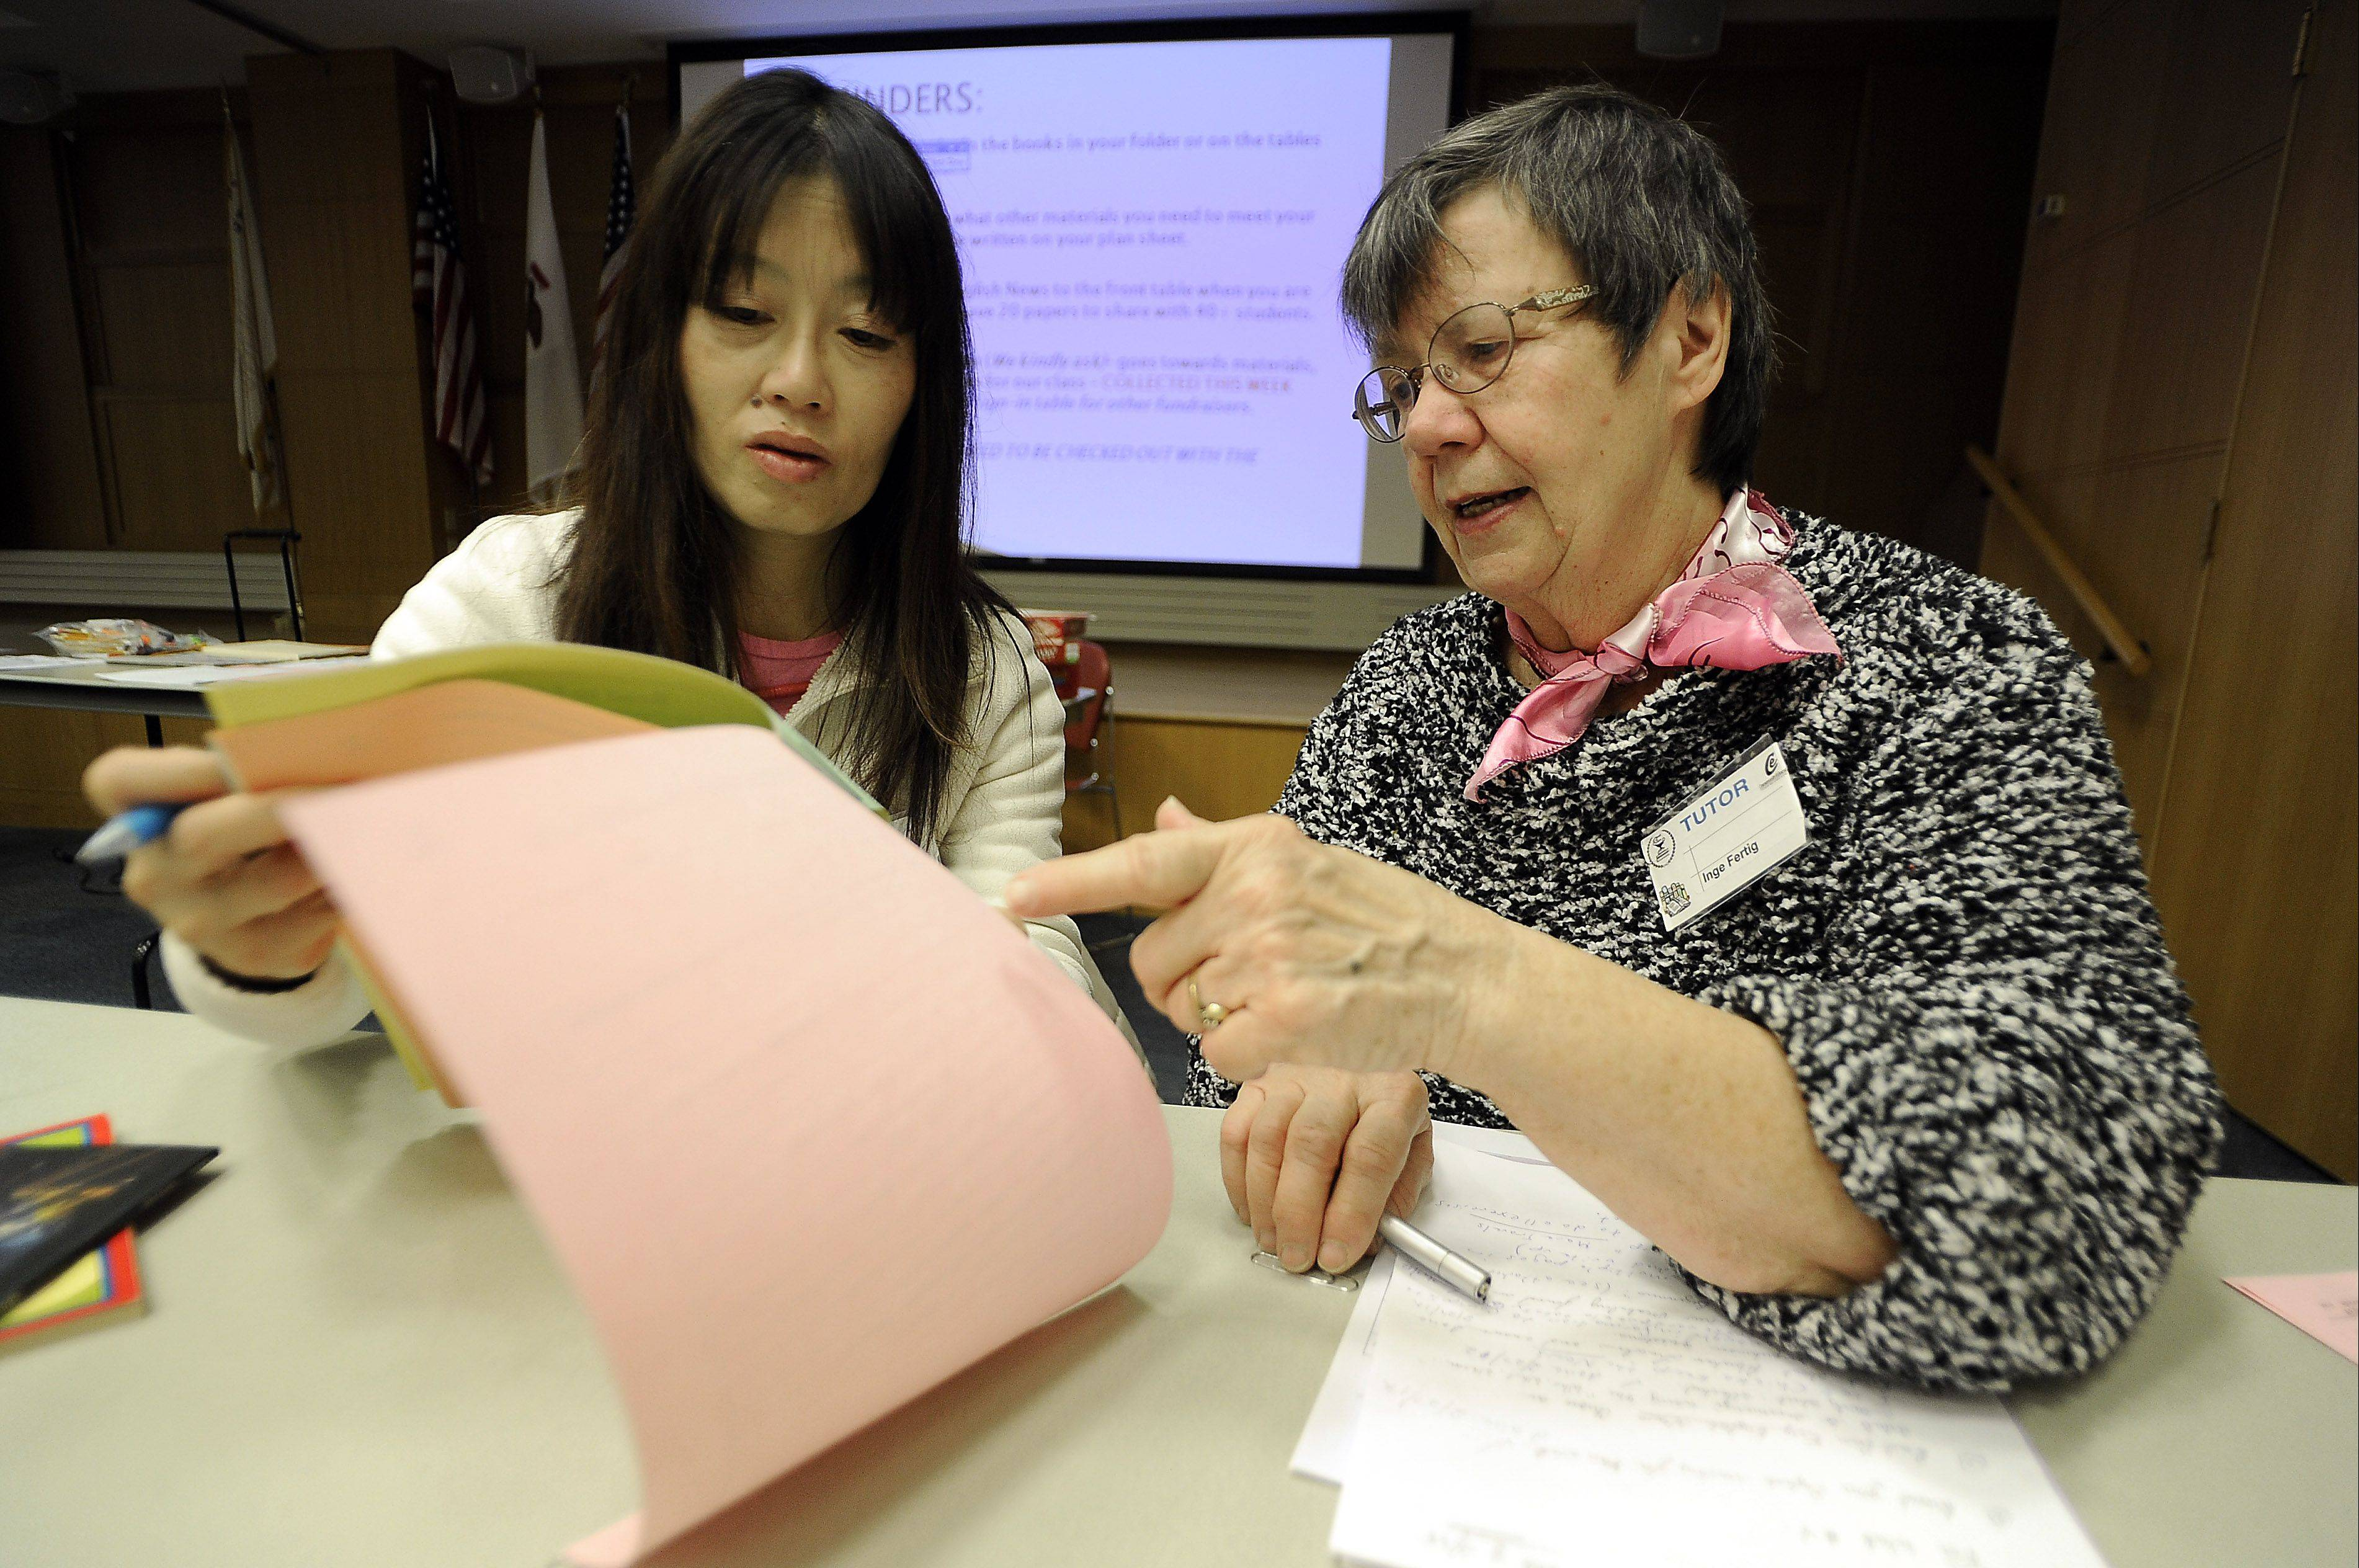 Chieko Katsuma of Vernon Hills works with tutor Inge Fertig of Arlington Heights at the Arlington Heights Memorial Library for the District 214 Read to Learn program.